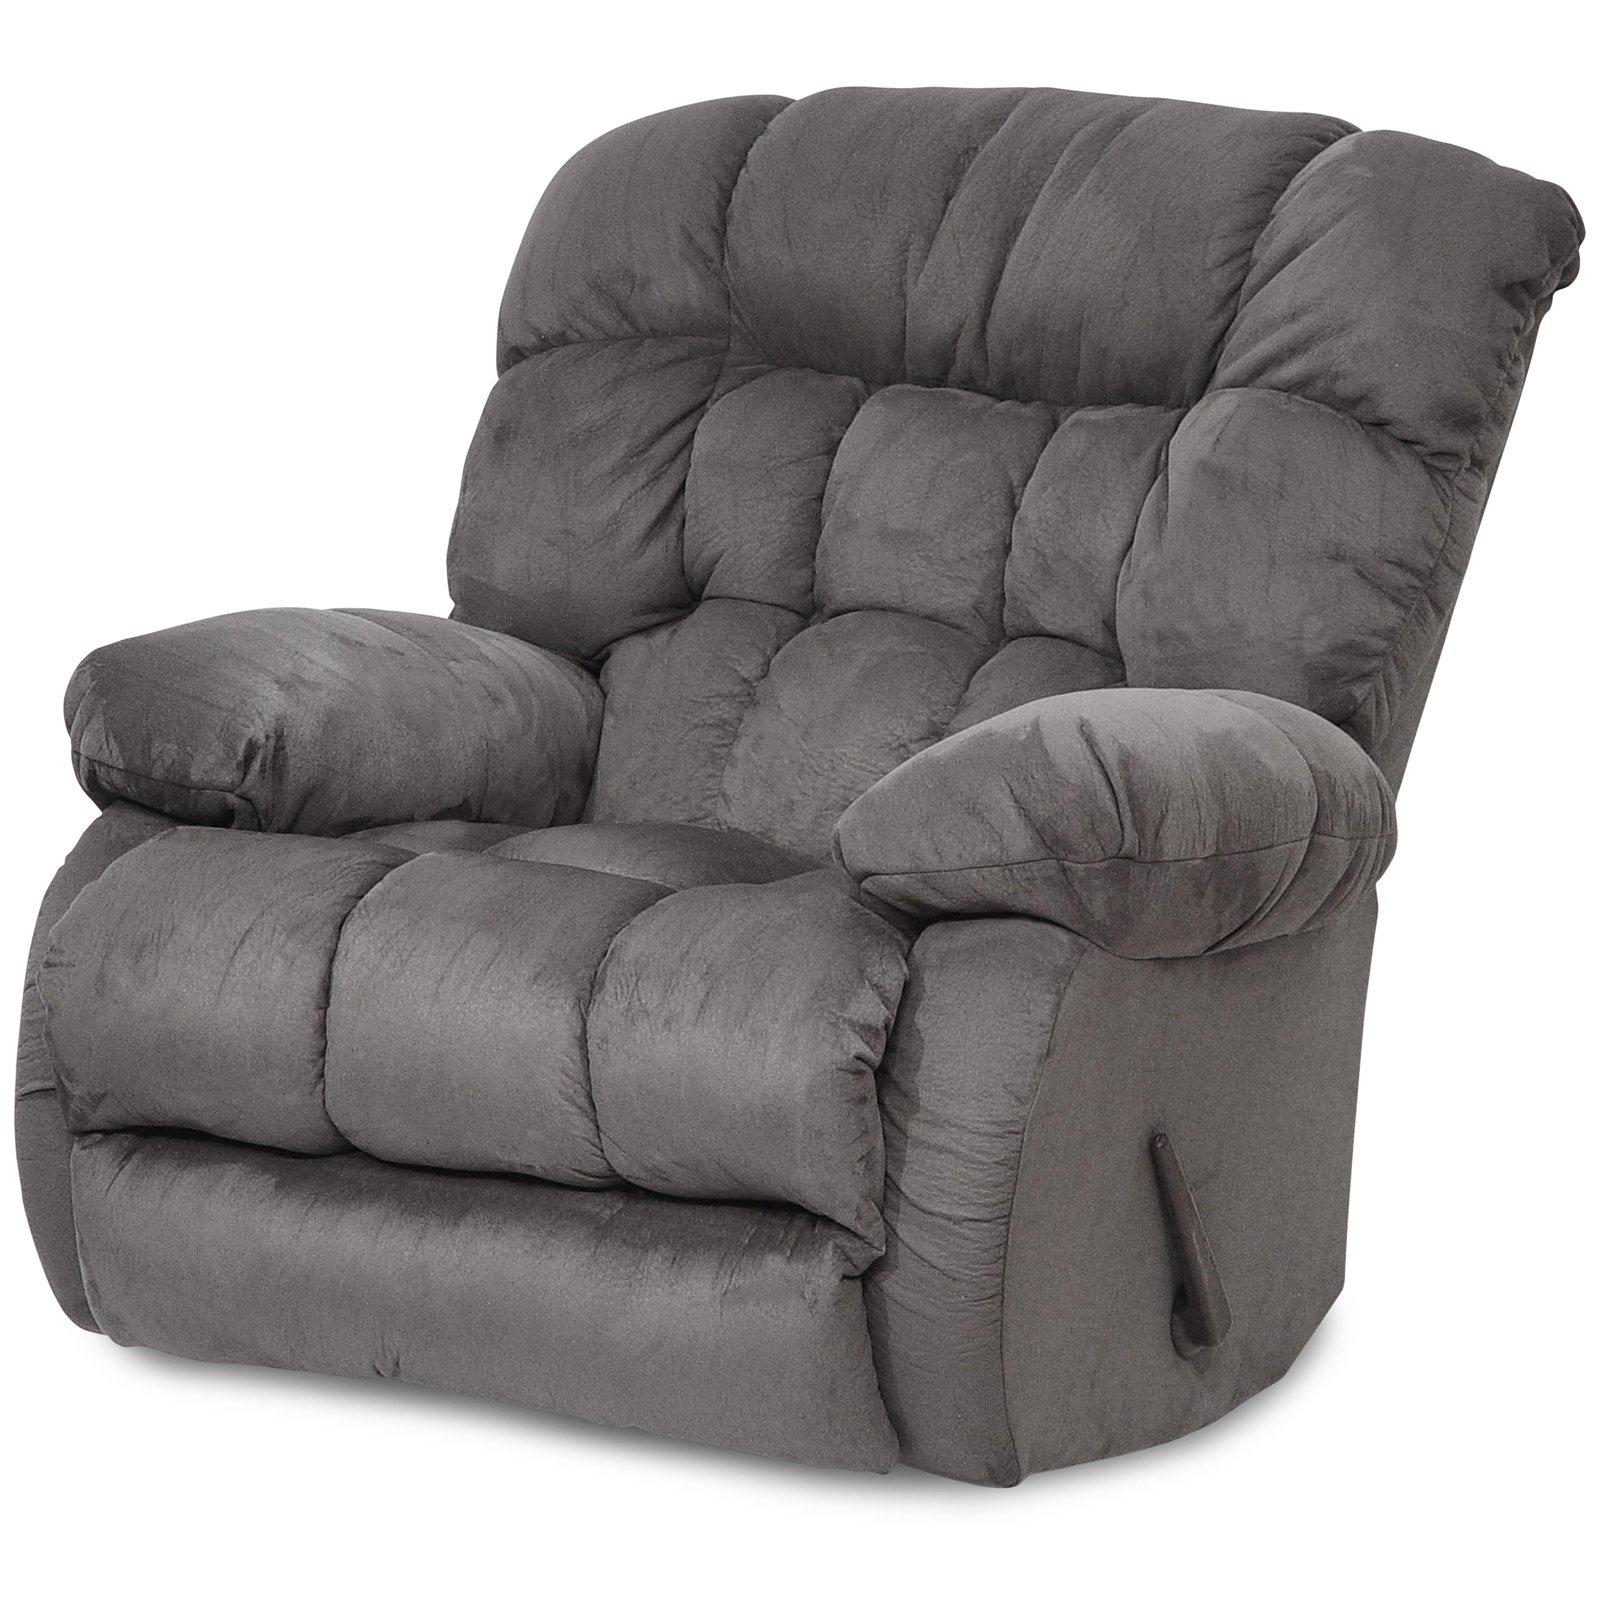 Latest Rogan Leather Cafe Latte Swivel Glider Recliners Inside Furniture: Surprising Simmons Recliners For Contemporary Living Room (View 7 of 20)